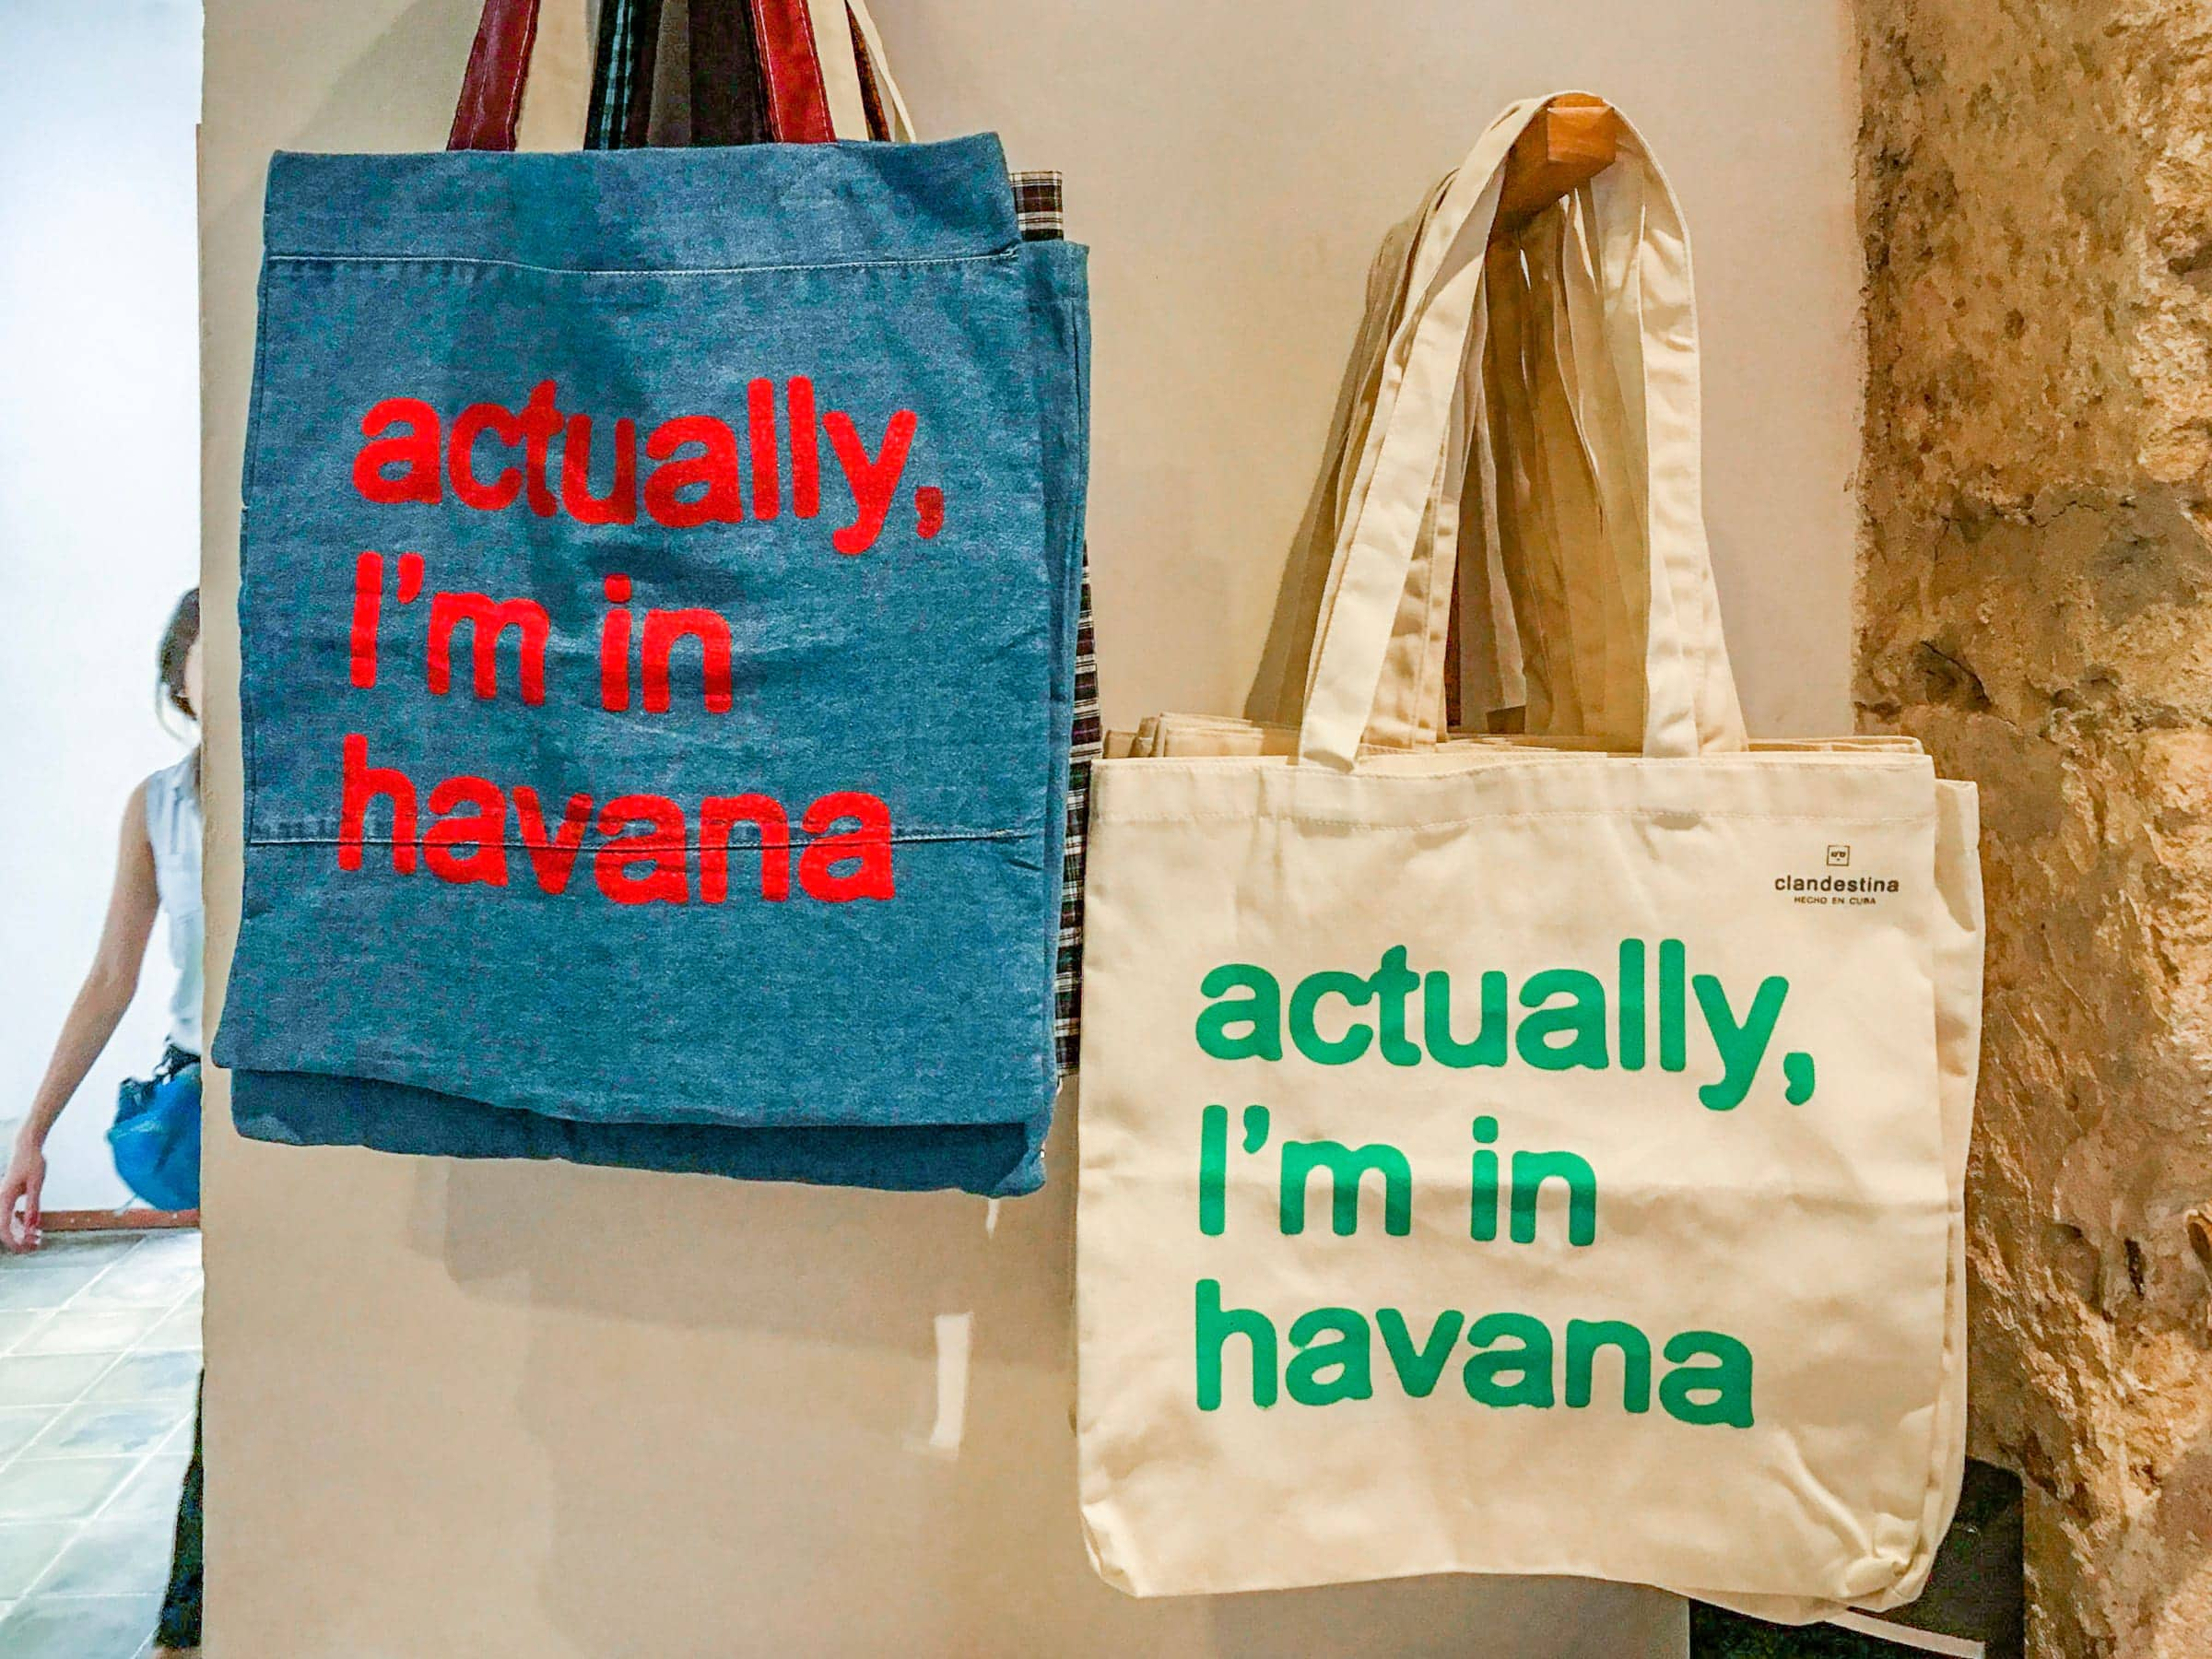 Bags for sale at Clandestina, Cuba by Patrick Bennett